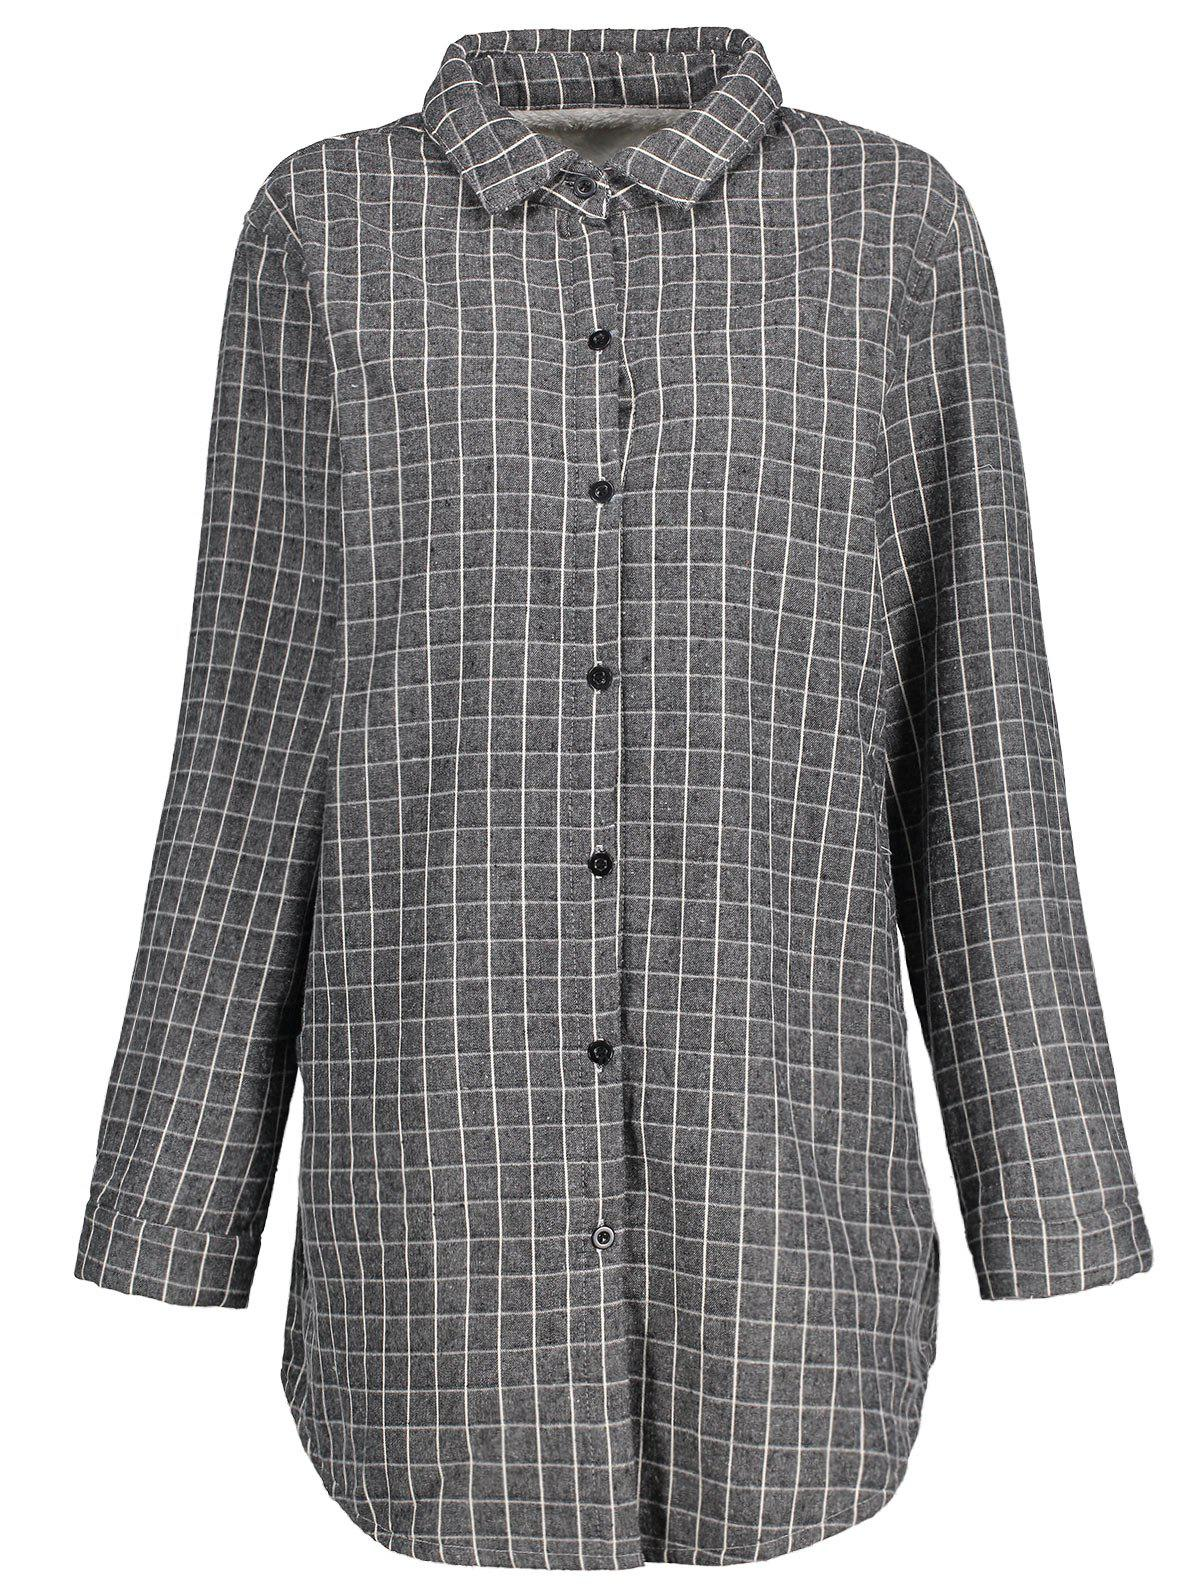 Plus Size Fleece Lined Plaid Shirt - GRAY 3XL